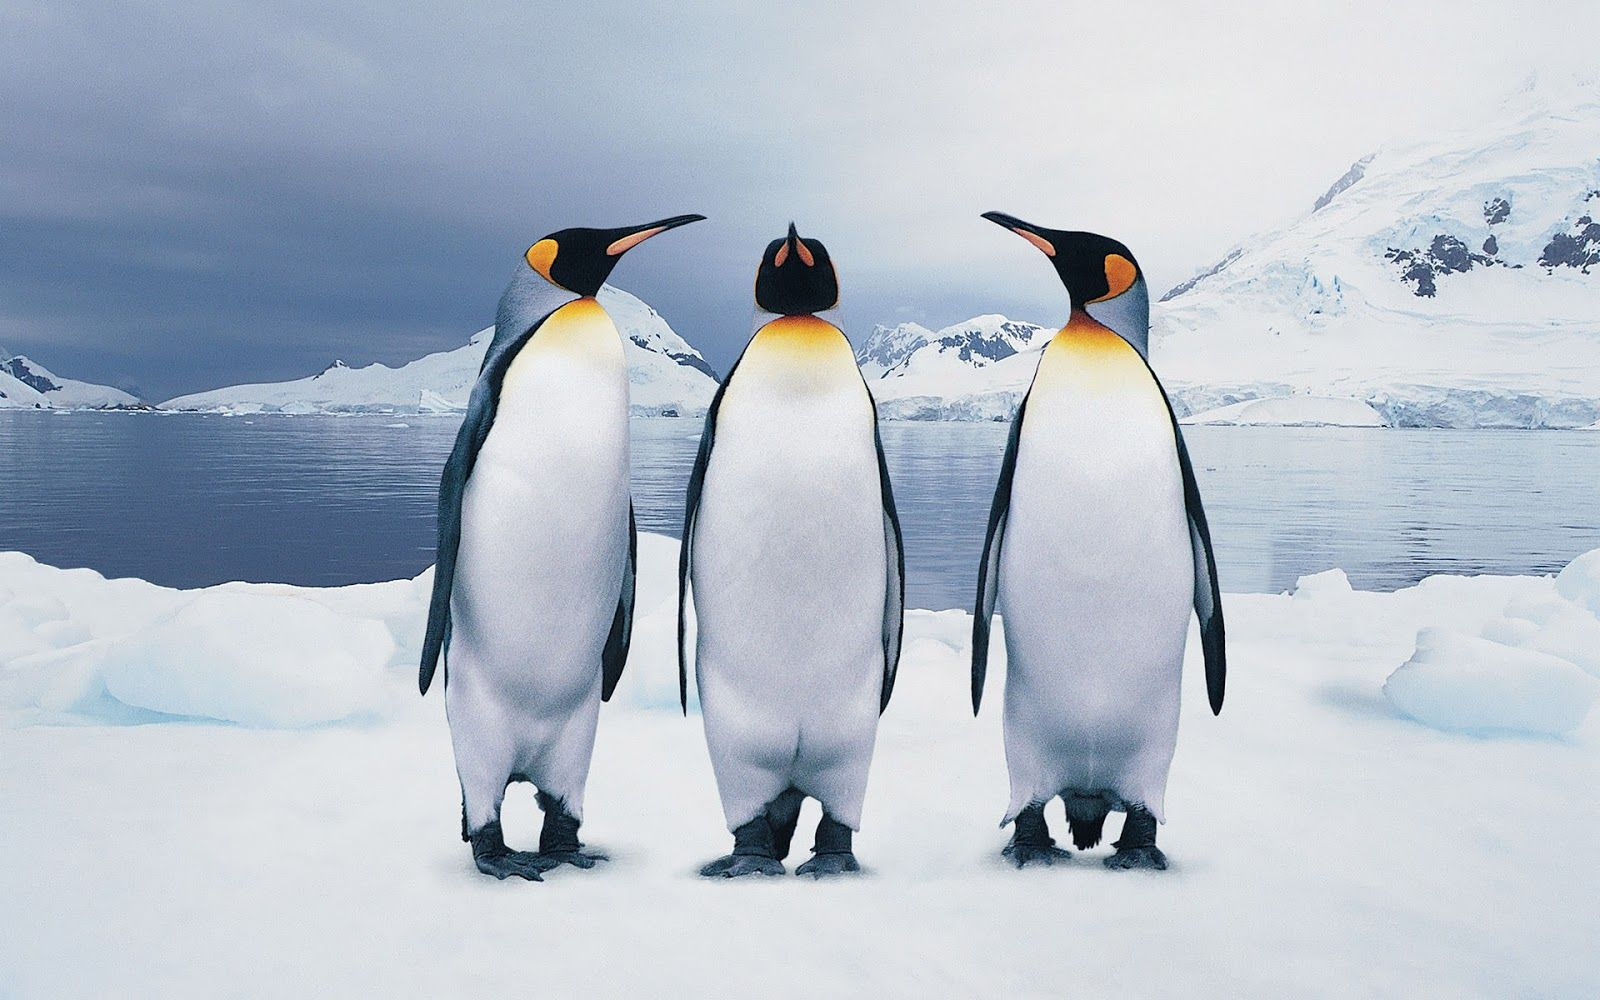 Collection of Penguin Wallpaper on HDWallpapers 1200800 Images Of 1600x1000